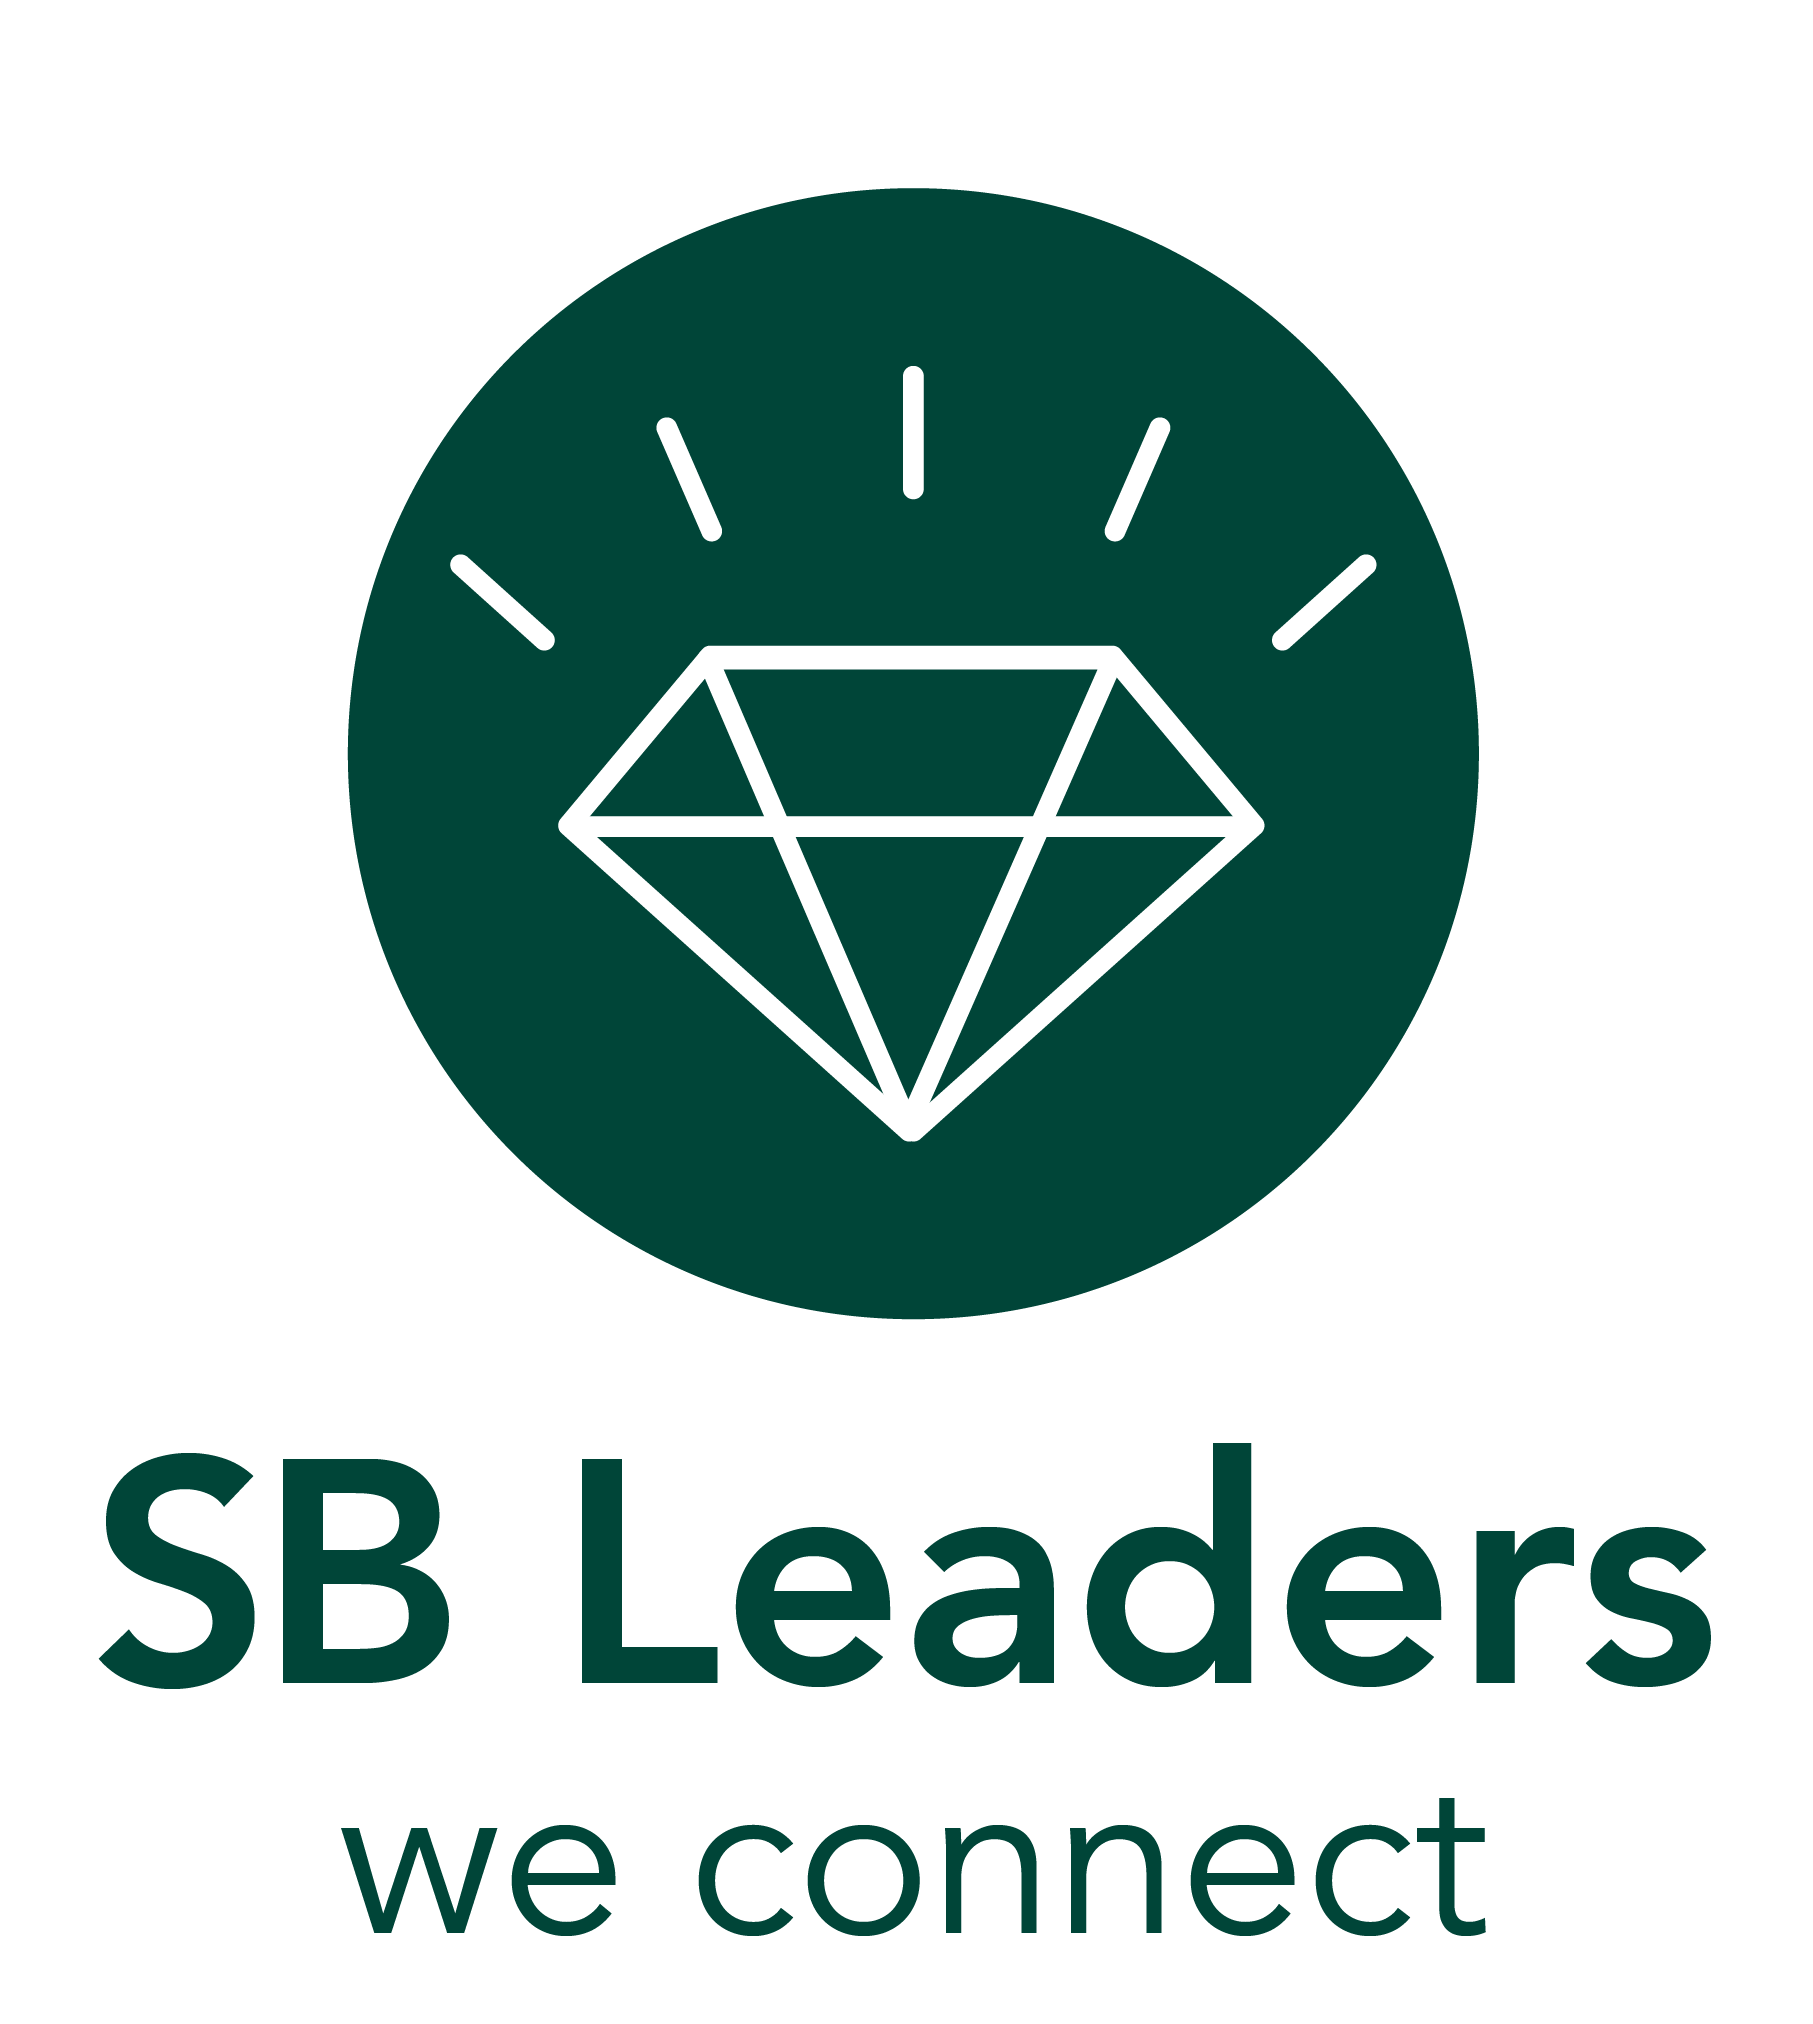 SB_Leaders_Logo_Icon_Black_3-05.png